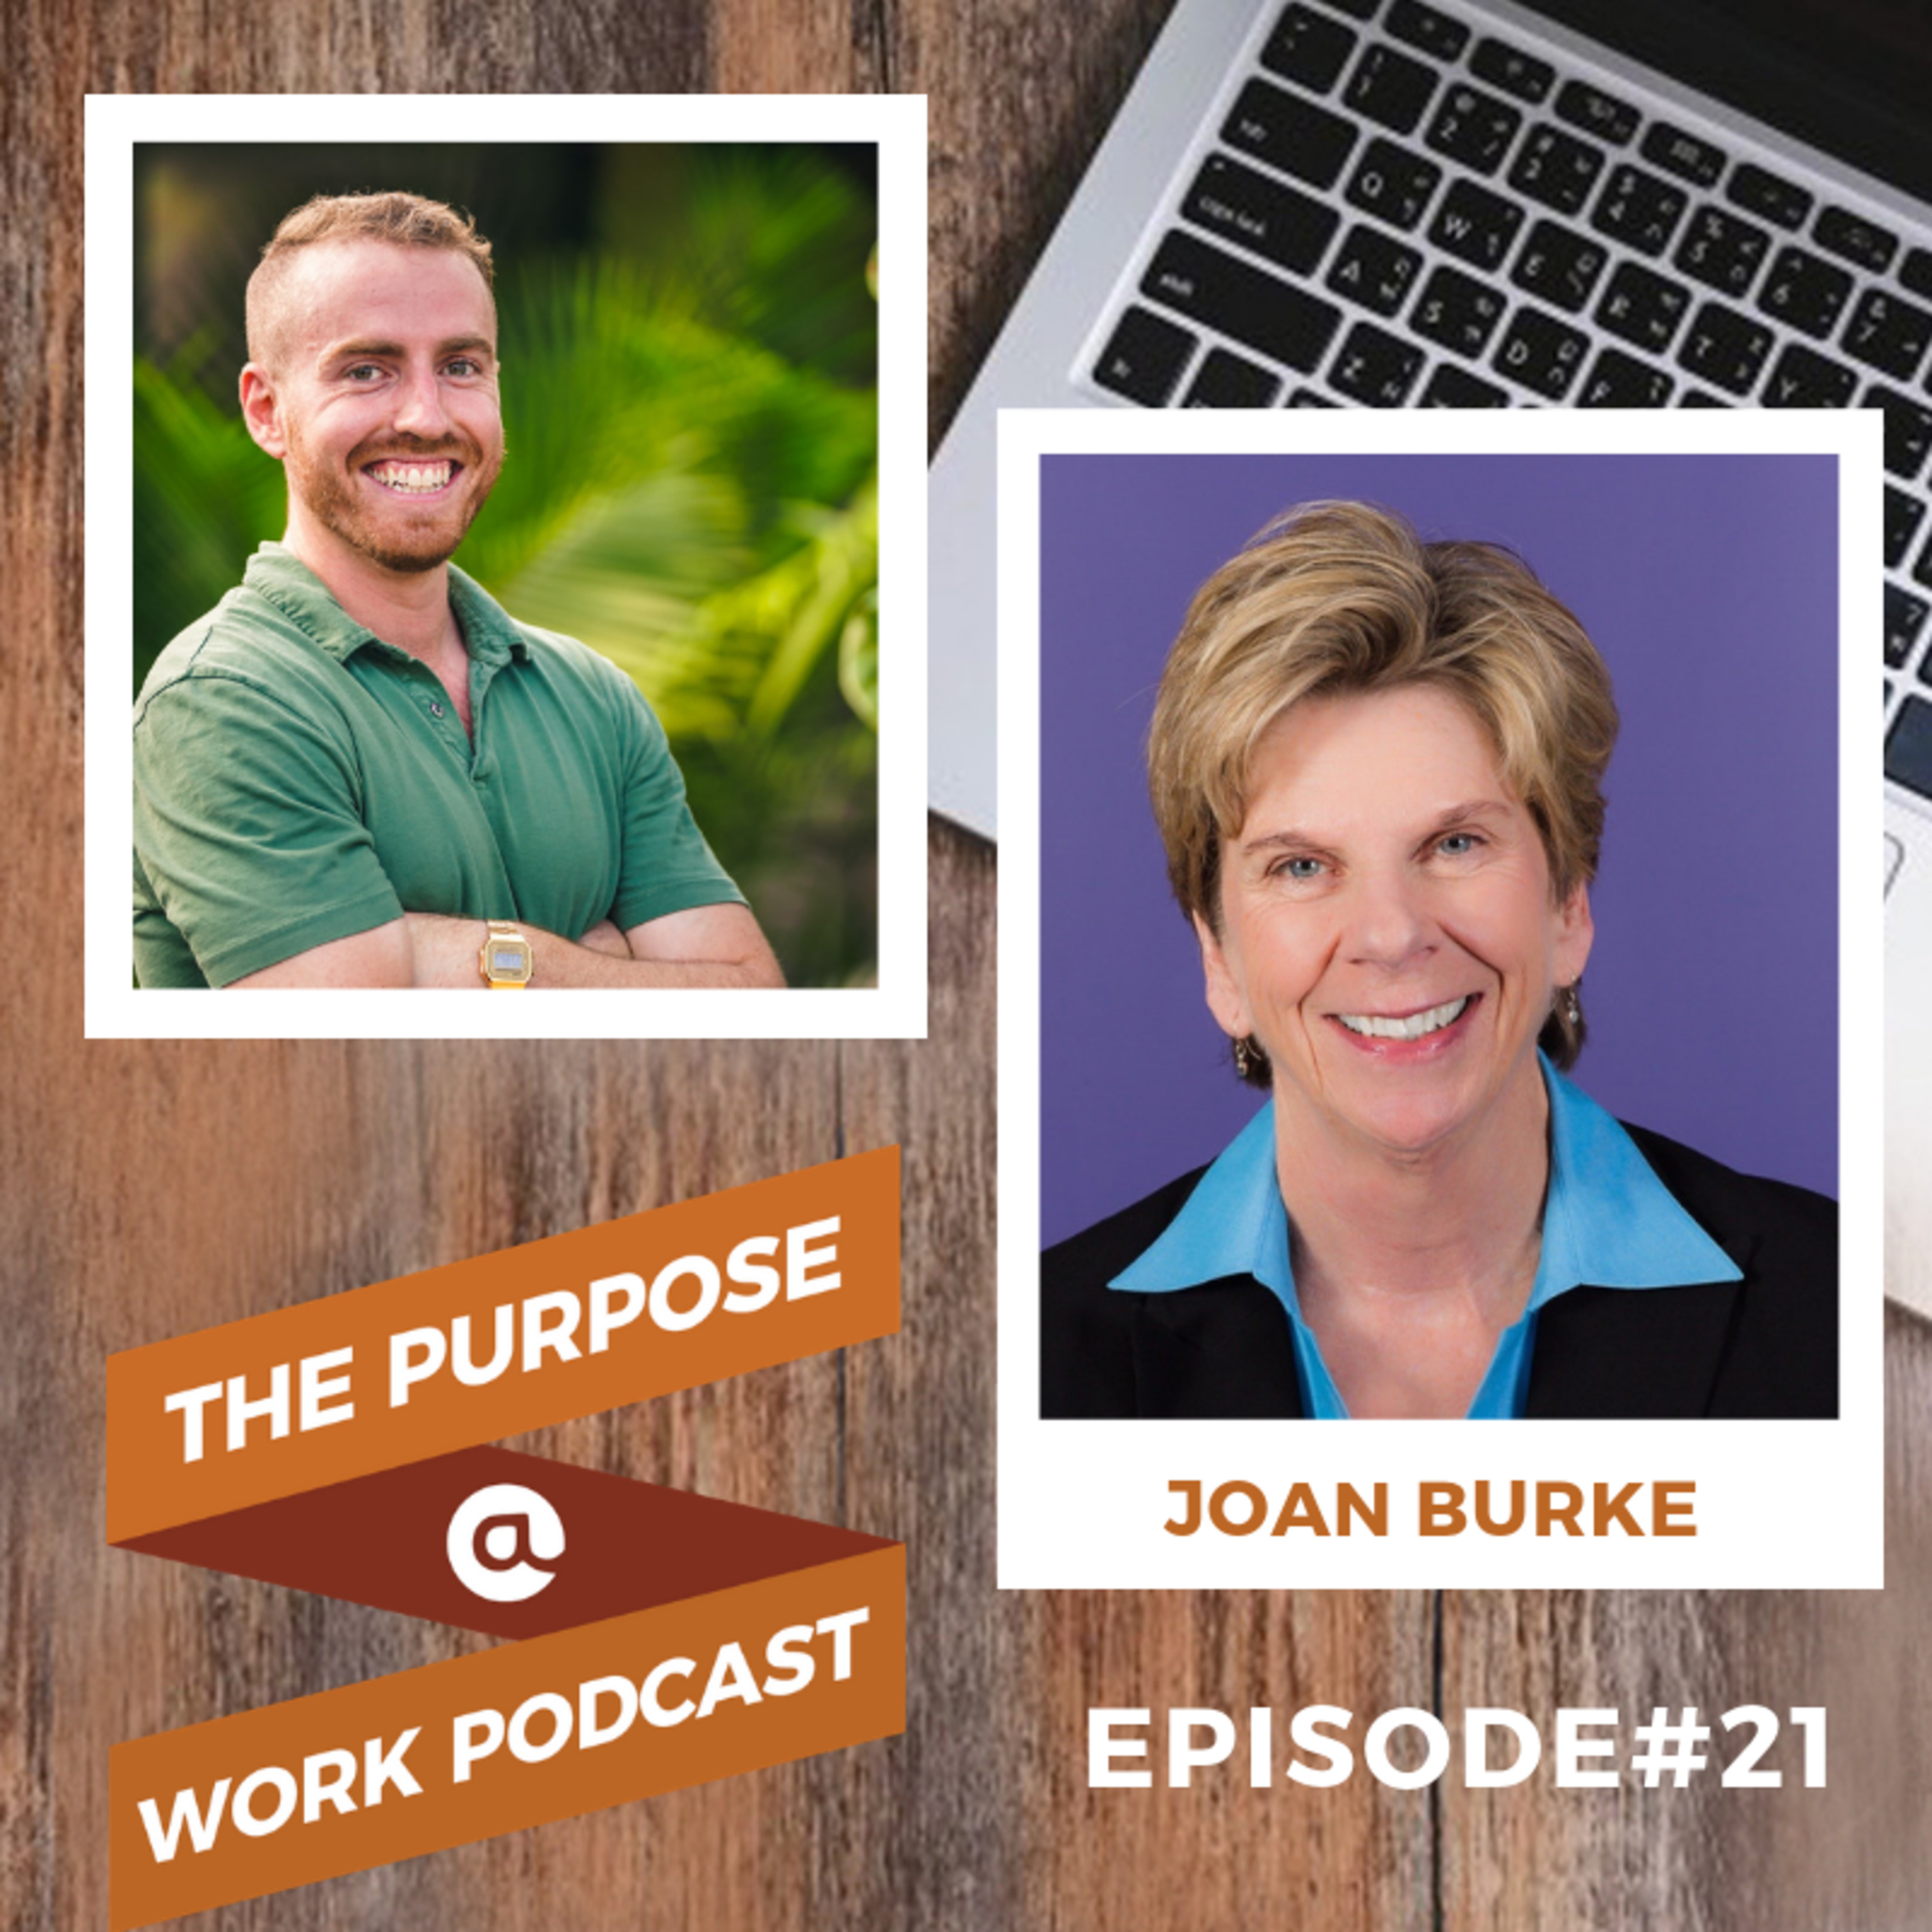 #21 Joan Burke - Chief People Officer @DocuSign: Diversity, Inclusion and the Gift of Feedback